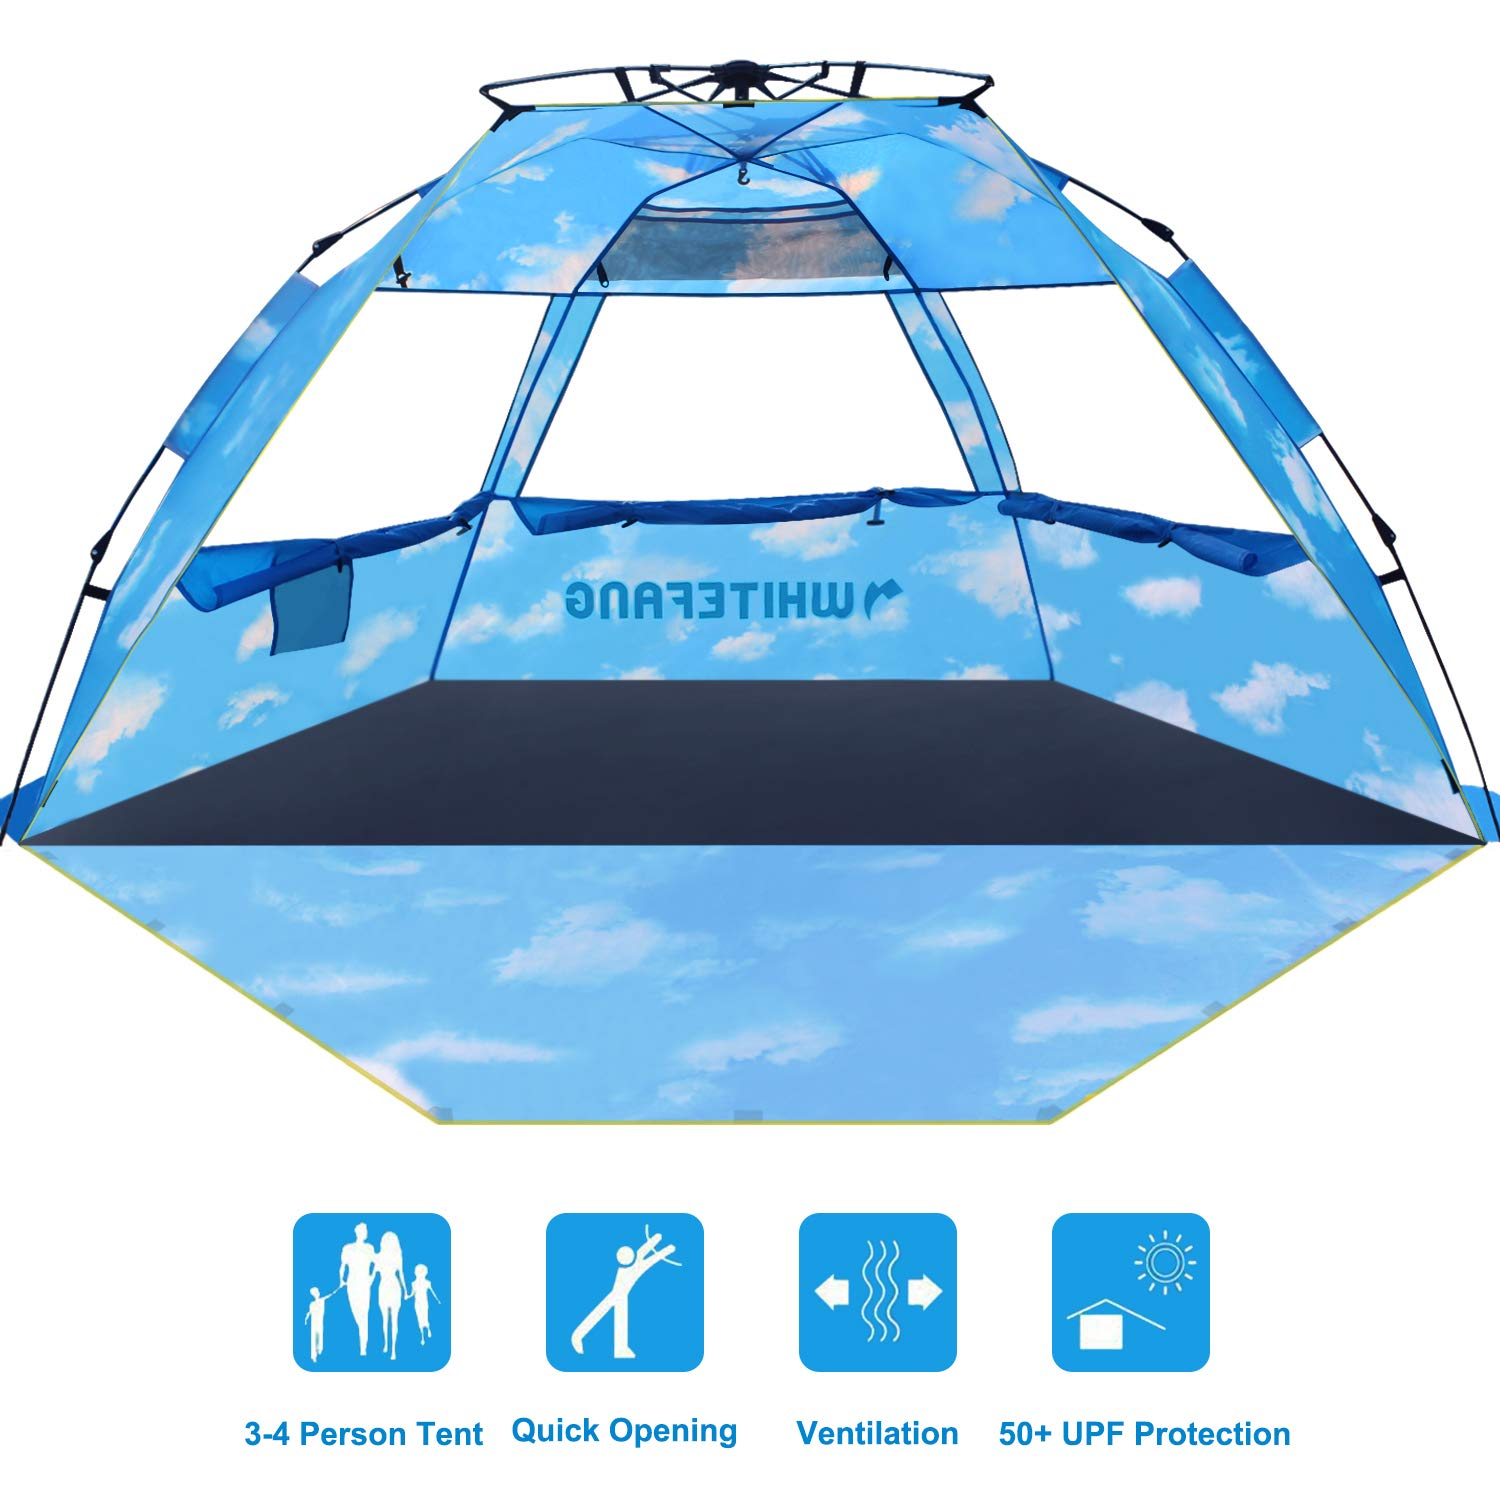 Beach Tent, Pop Up Instant Family Tent with UPF 50 Sun Protection, 3-4 Person Automatic & Windproof Sun Shelter Cabana with Carrying Bag (Limited Edition-Cloud Print) by WhiteFang